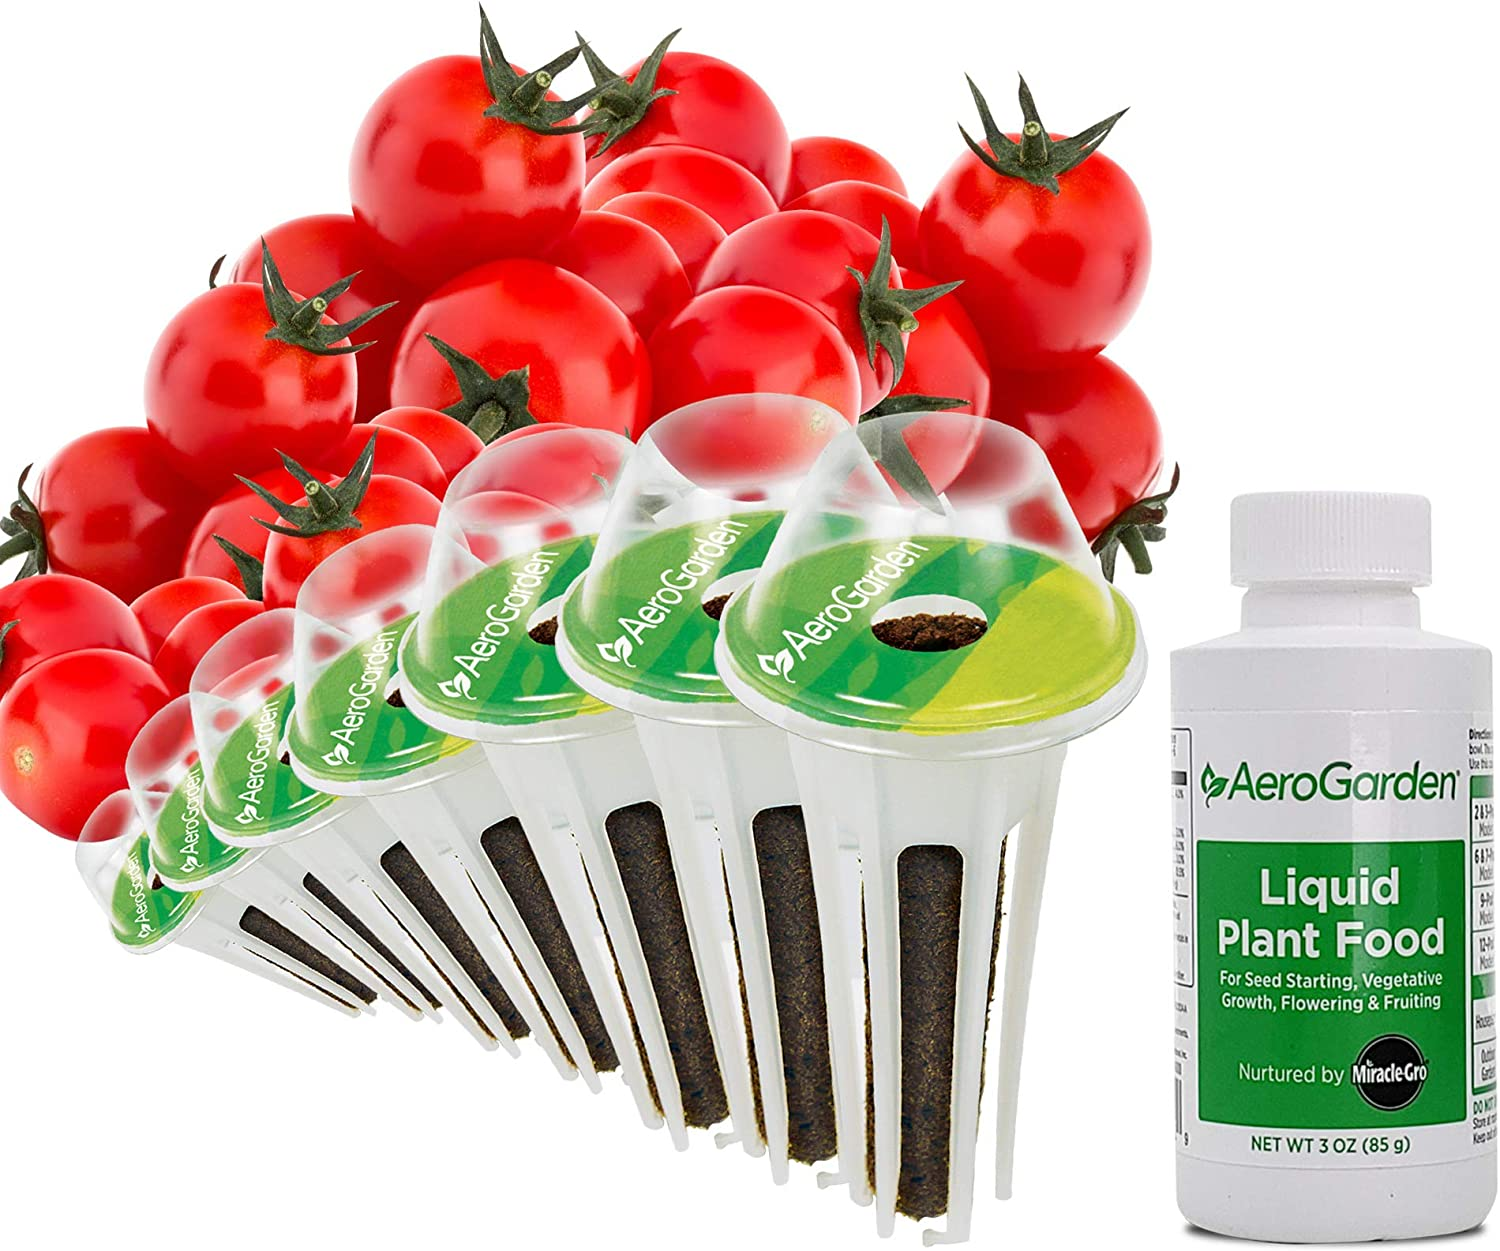 AeroGarden Red Heirloom Cherry Tomato Seed Pod Kit